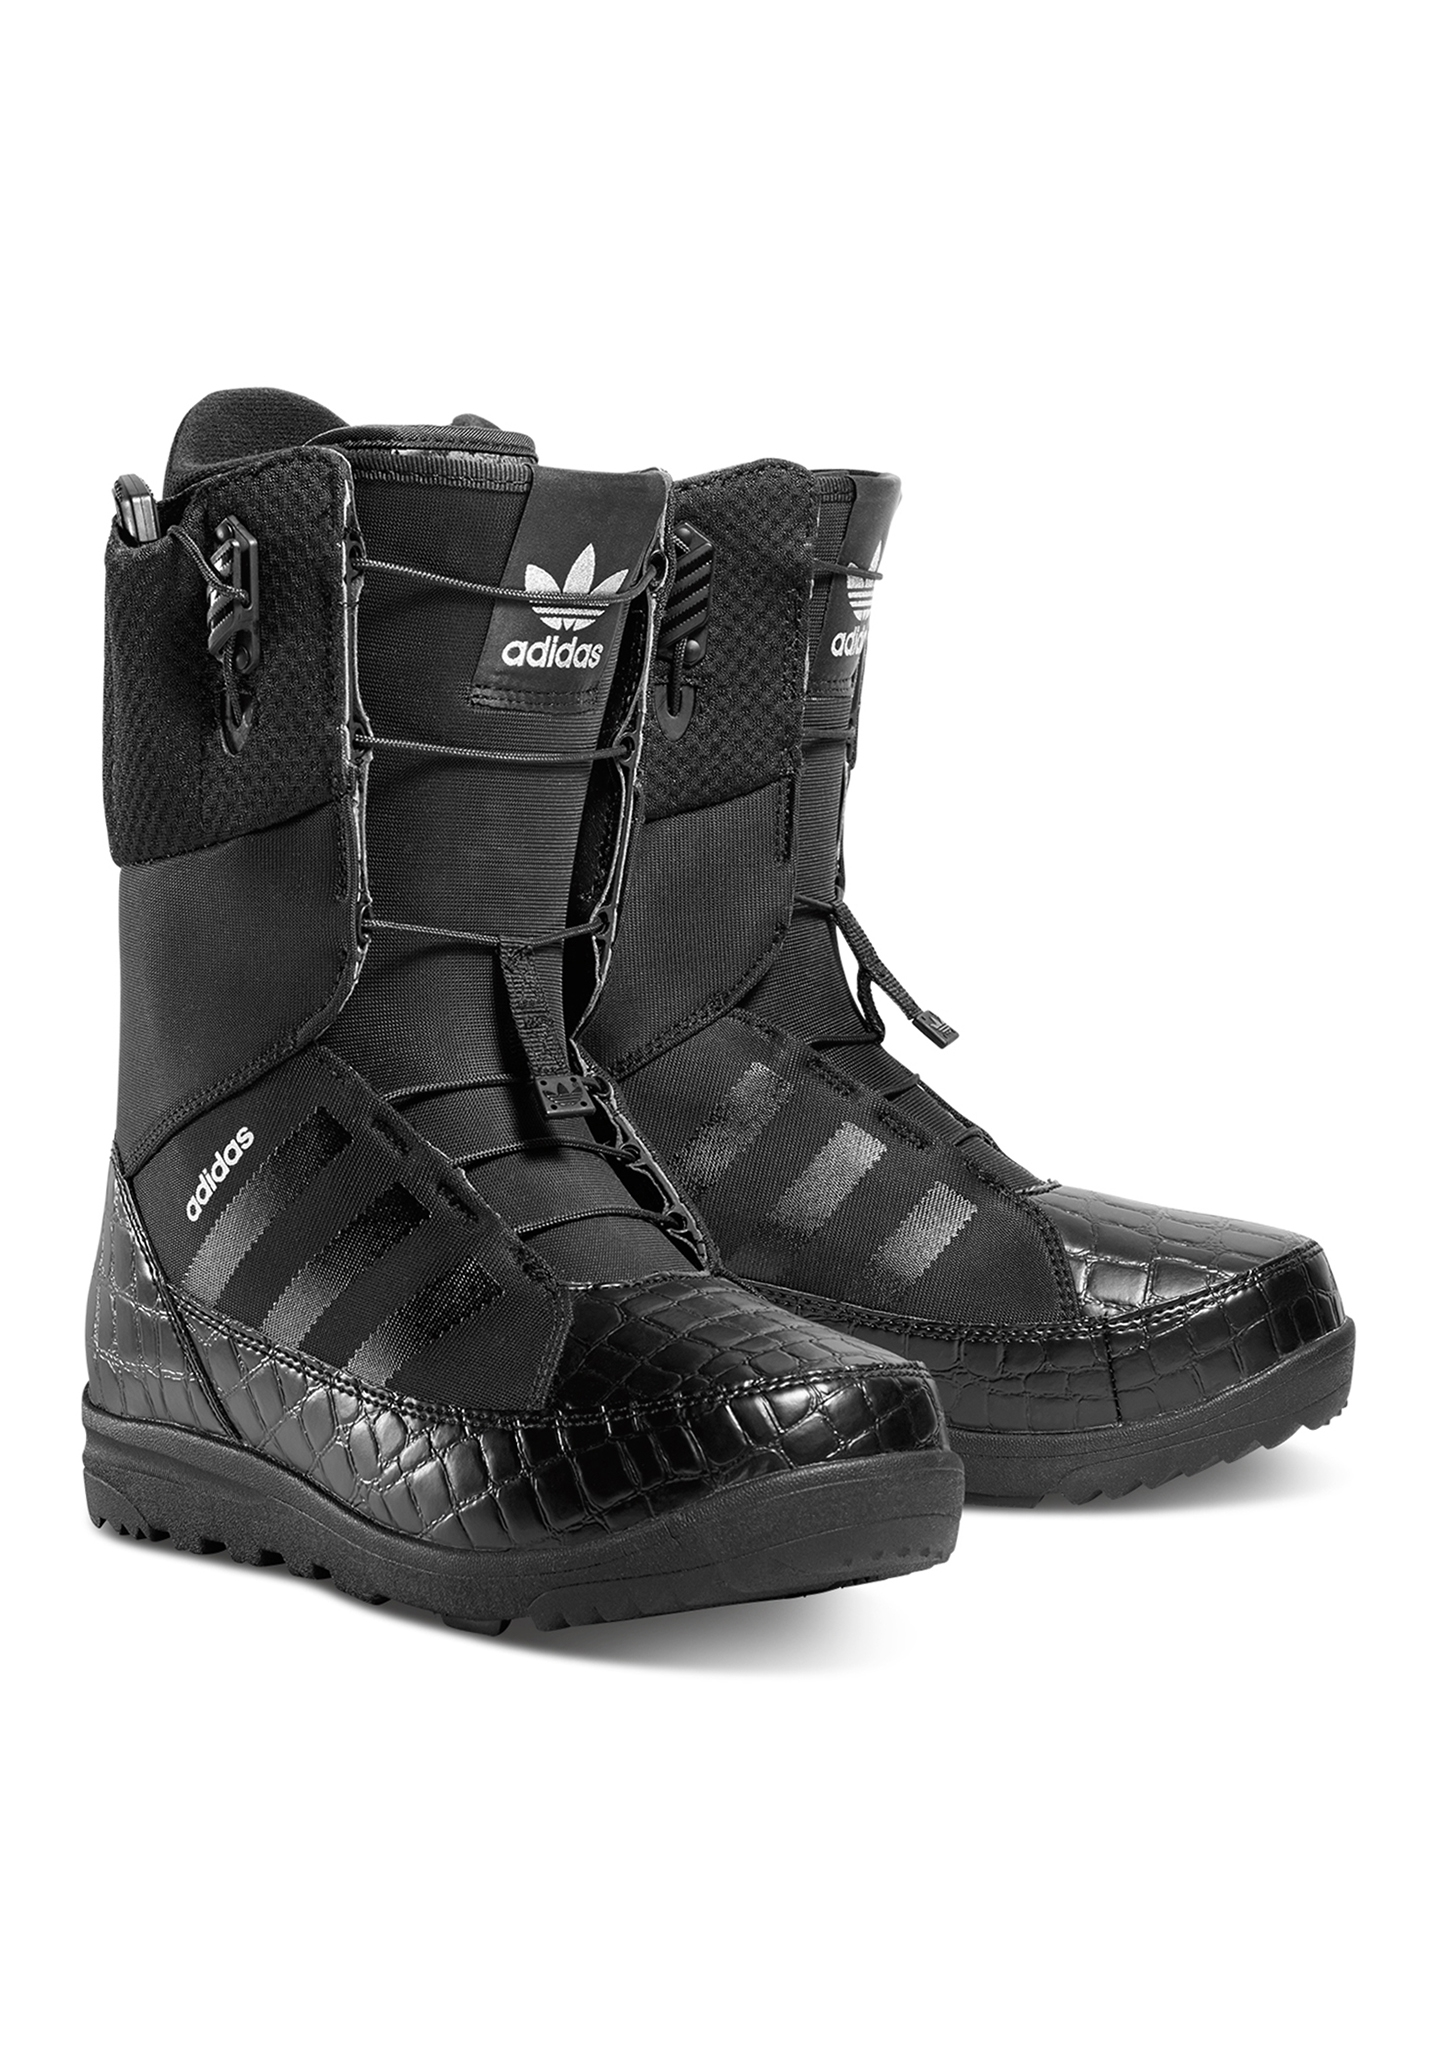 adidas snowboarding mika lumi damen snowboard boots snow schuhe stiefel ebay. Black Bedroom Furniture Sets. Home Design Ideas